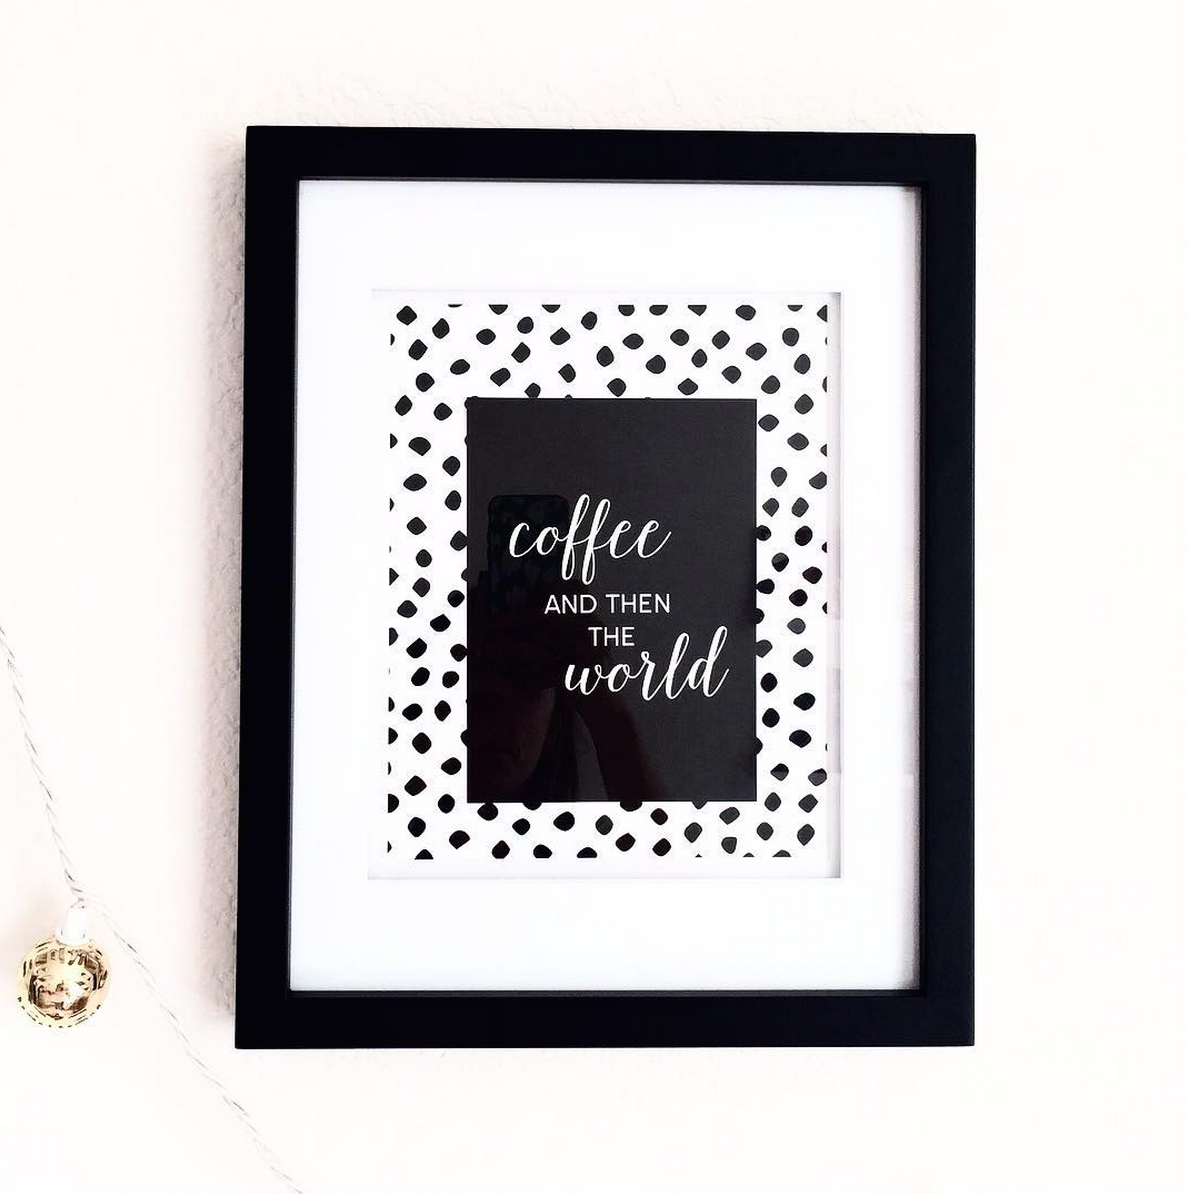 coffee than the world, leopard spots wall art print